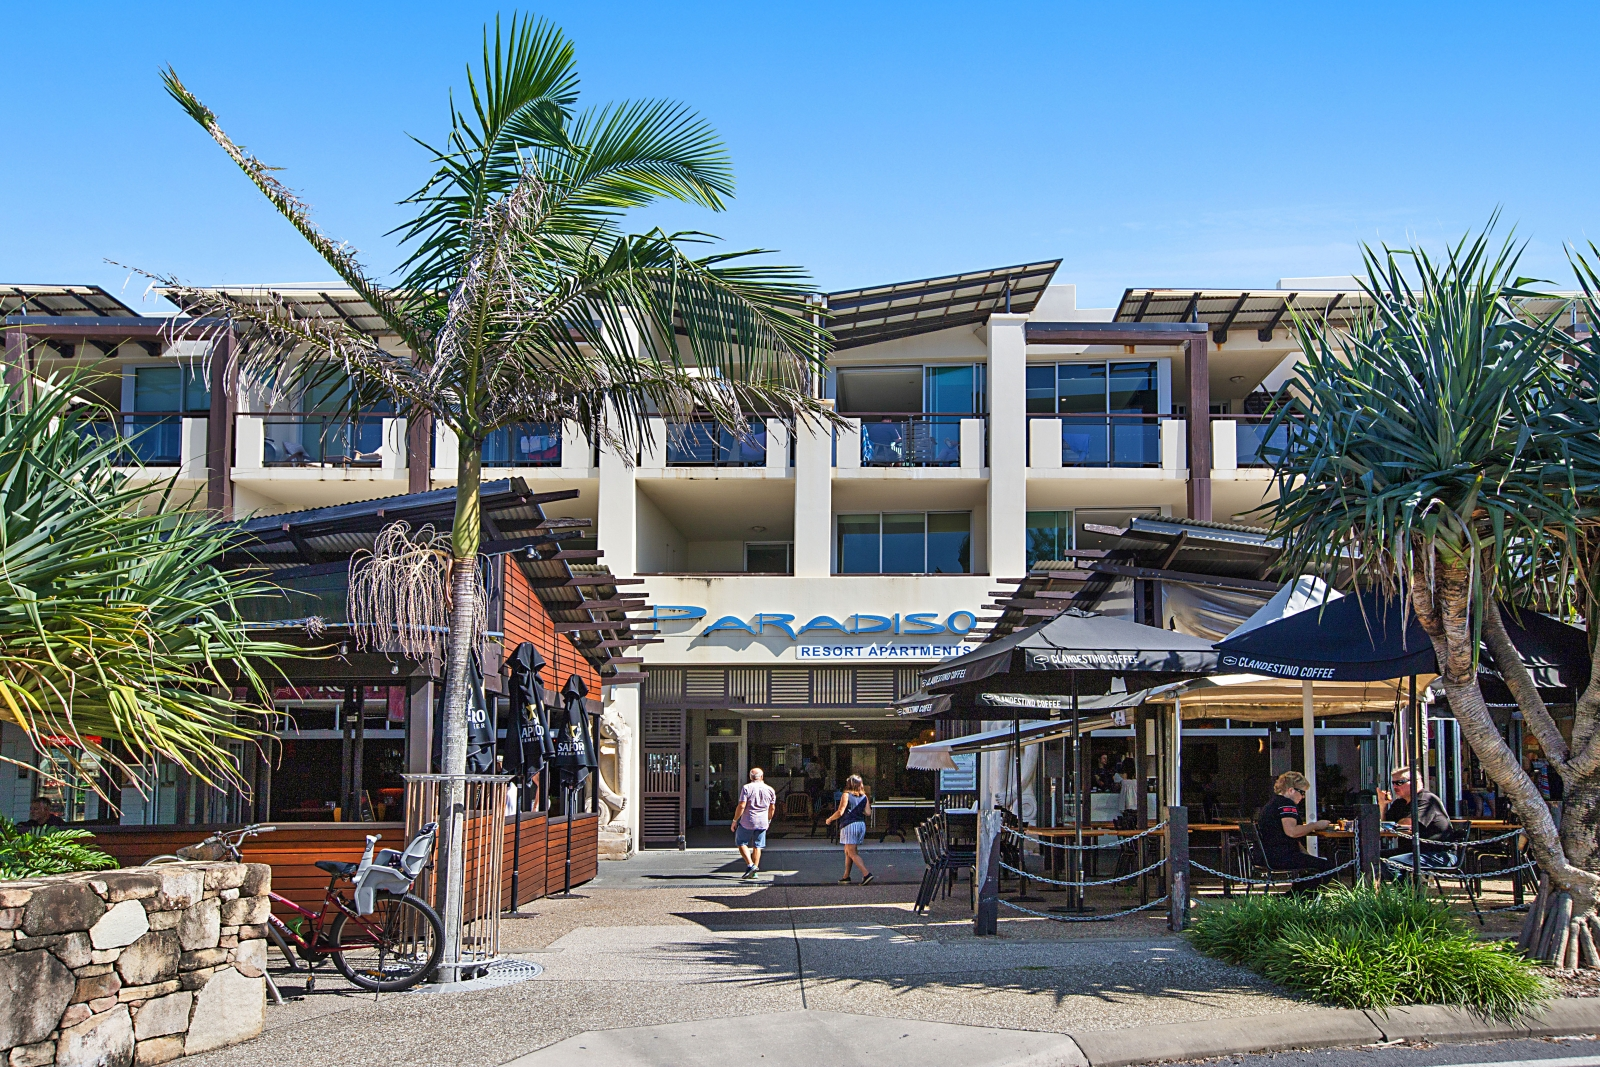 U 231 Paradiso Resort – The Real Deal – Combined income & location